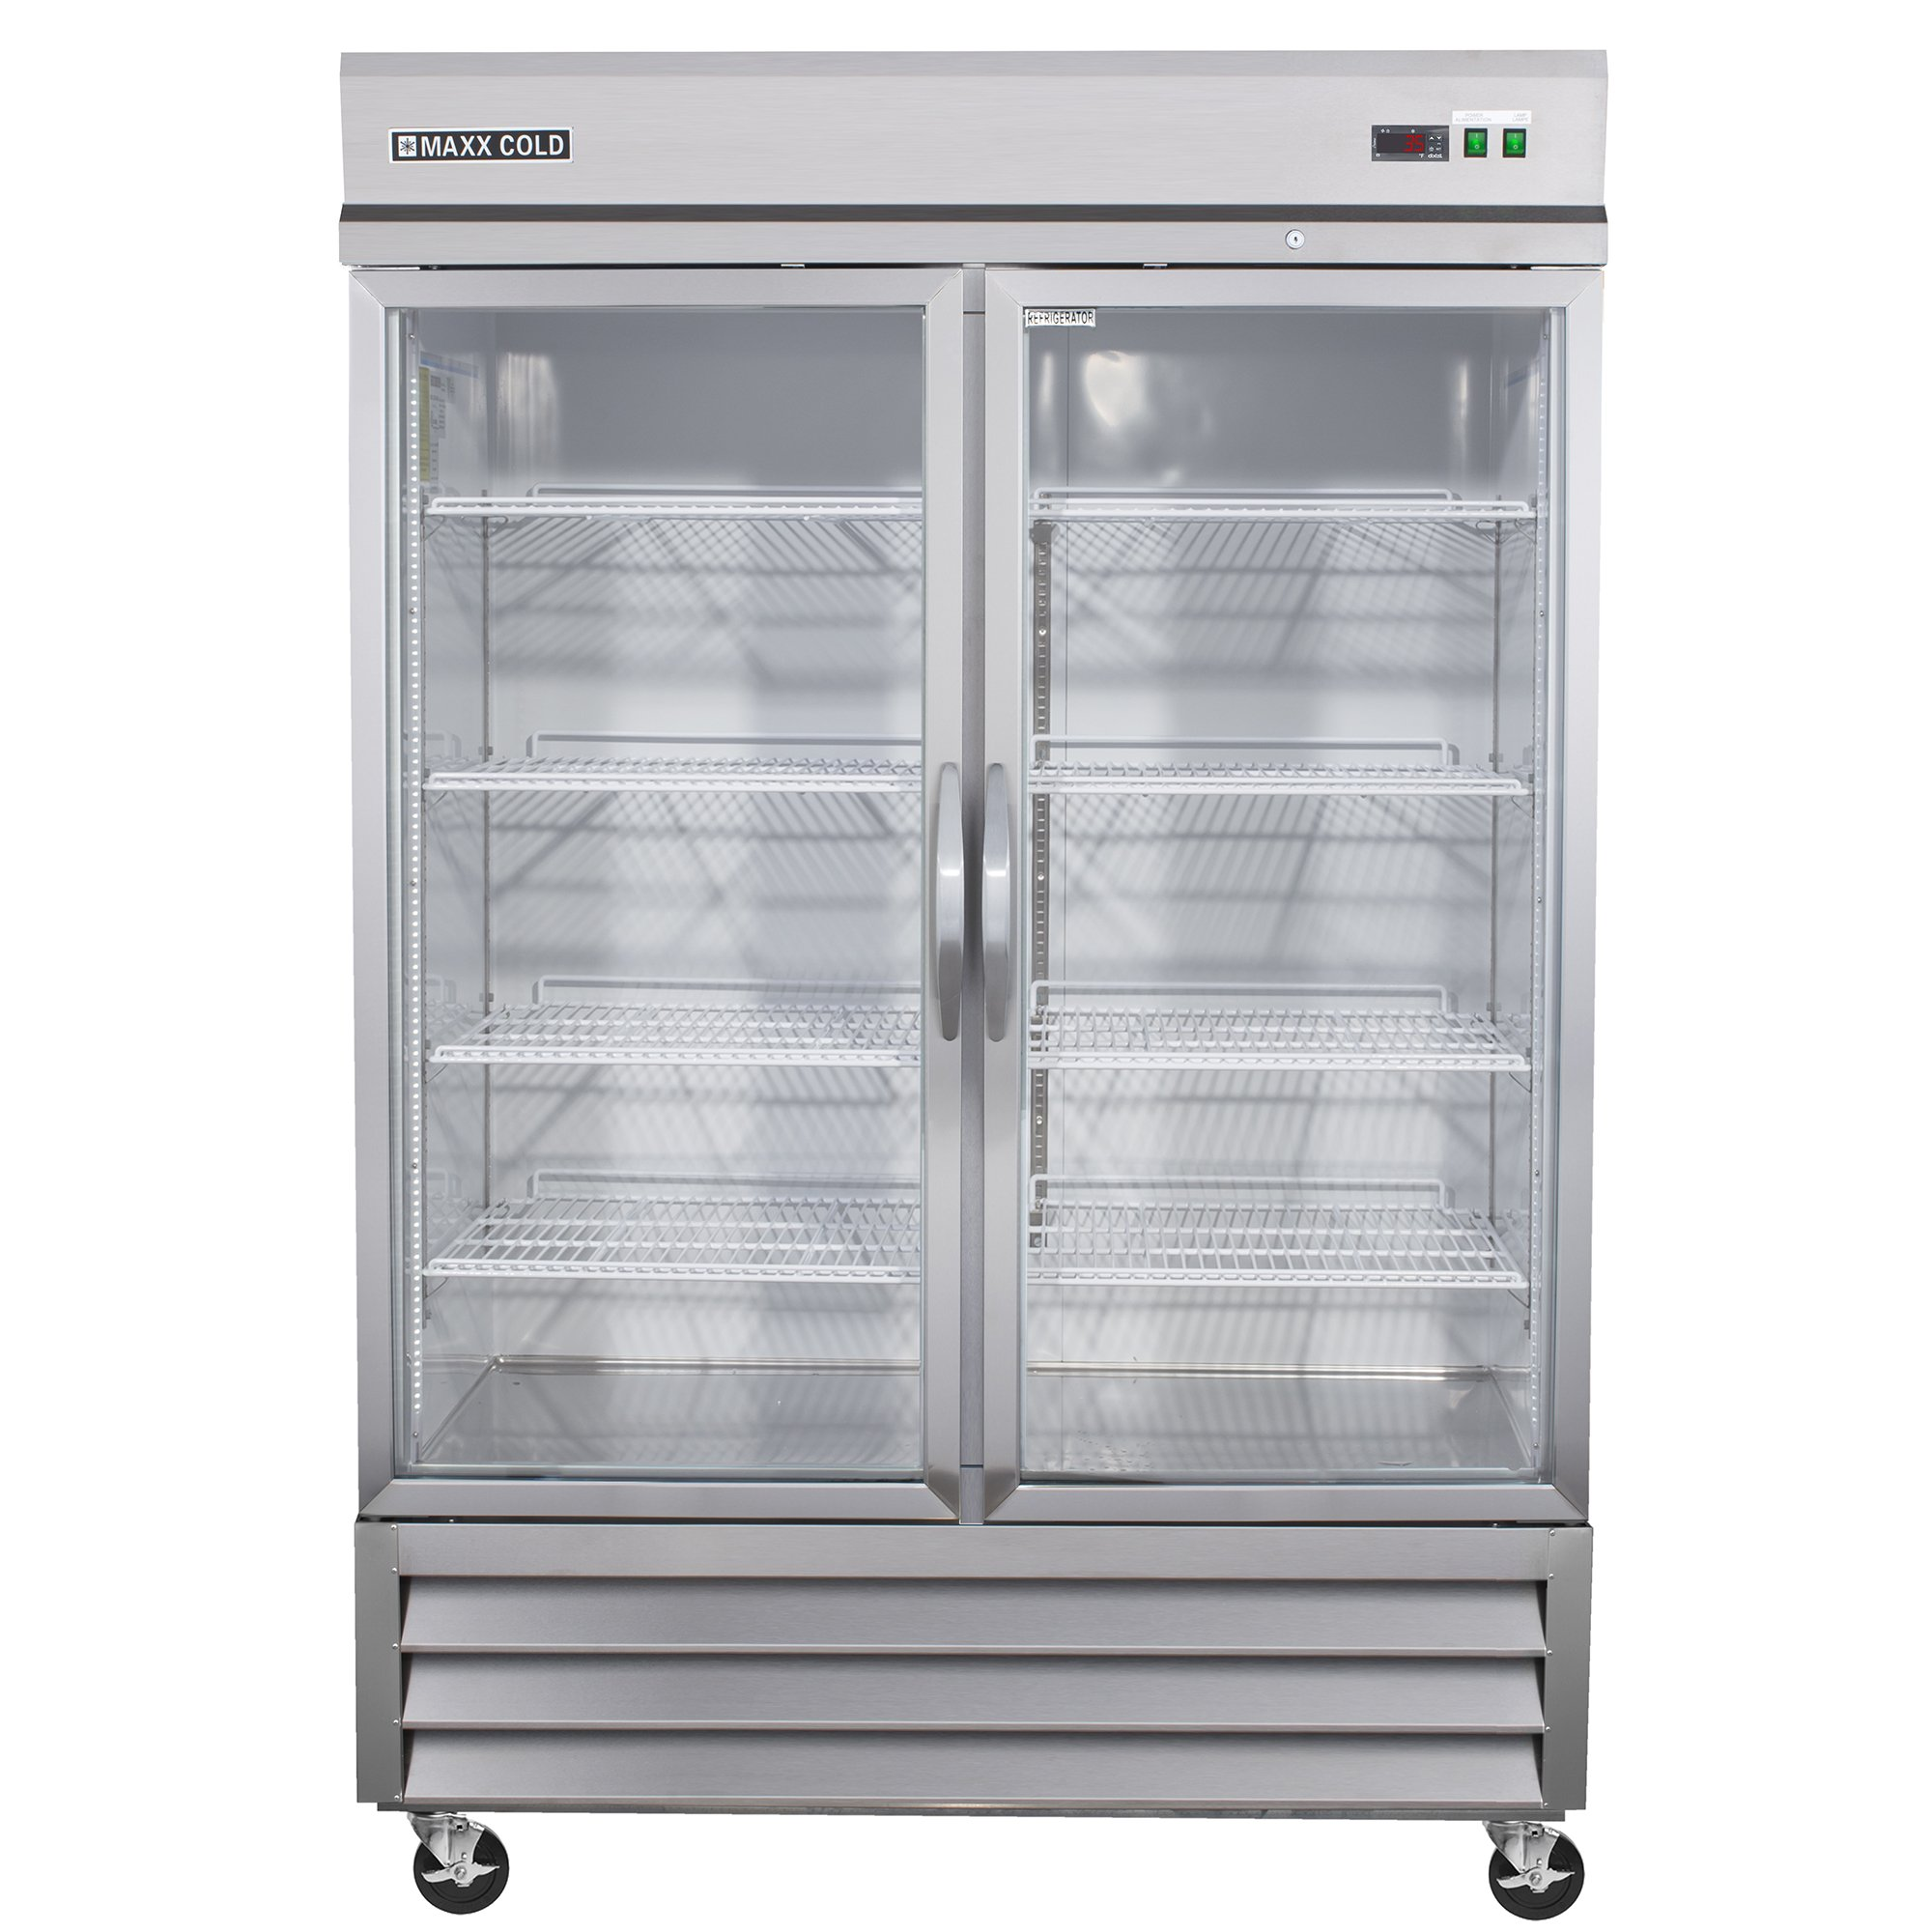 Maxx Cold MXCR-49GD Two Door GLASS Reach-In Upright Refrigerator - All Stainless Steel by MAXX Cold